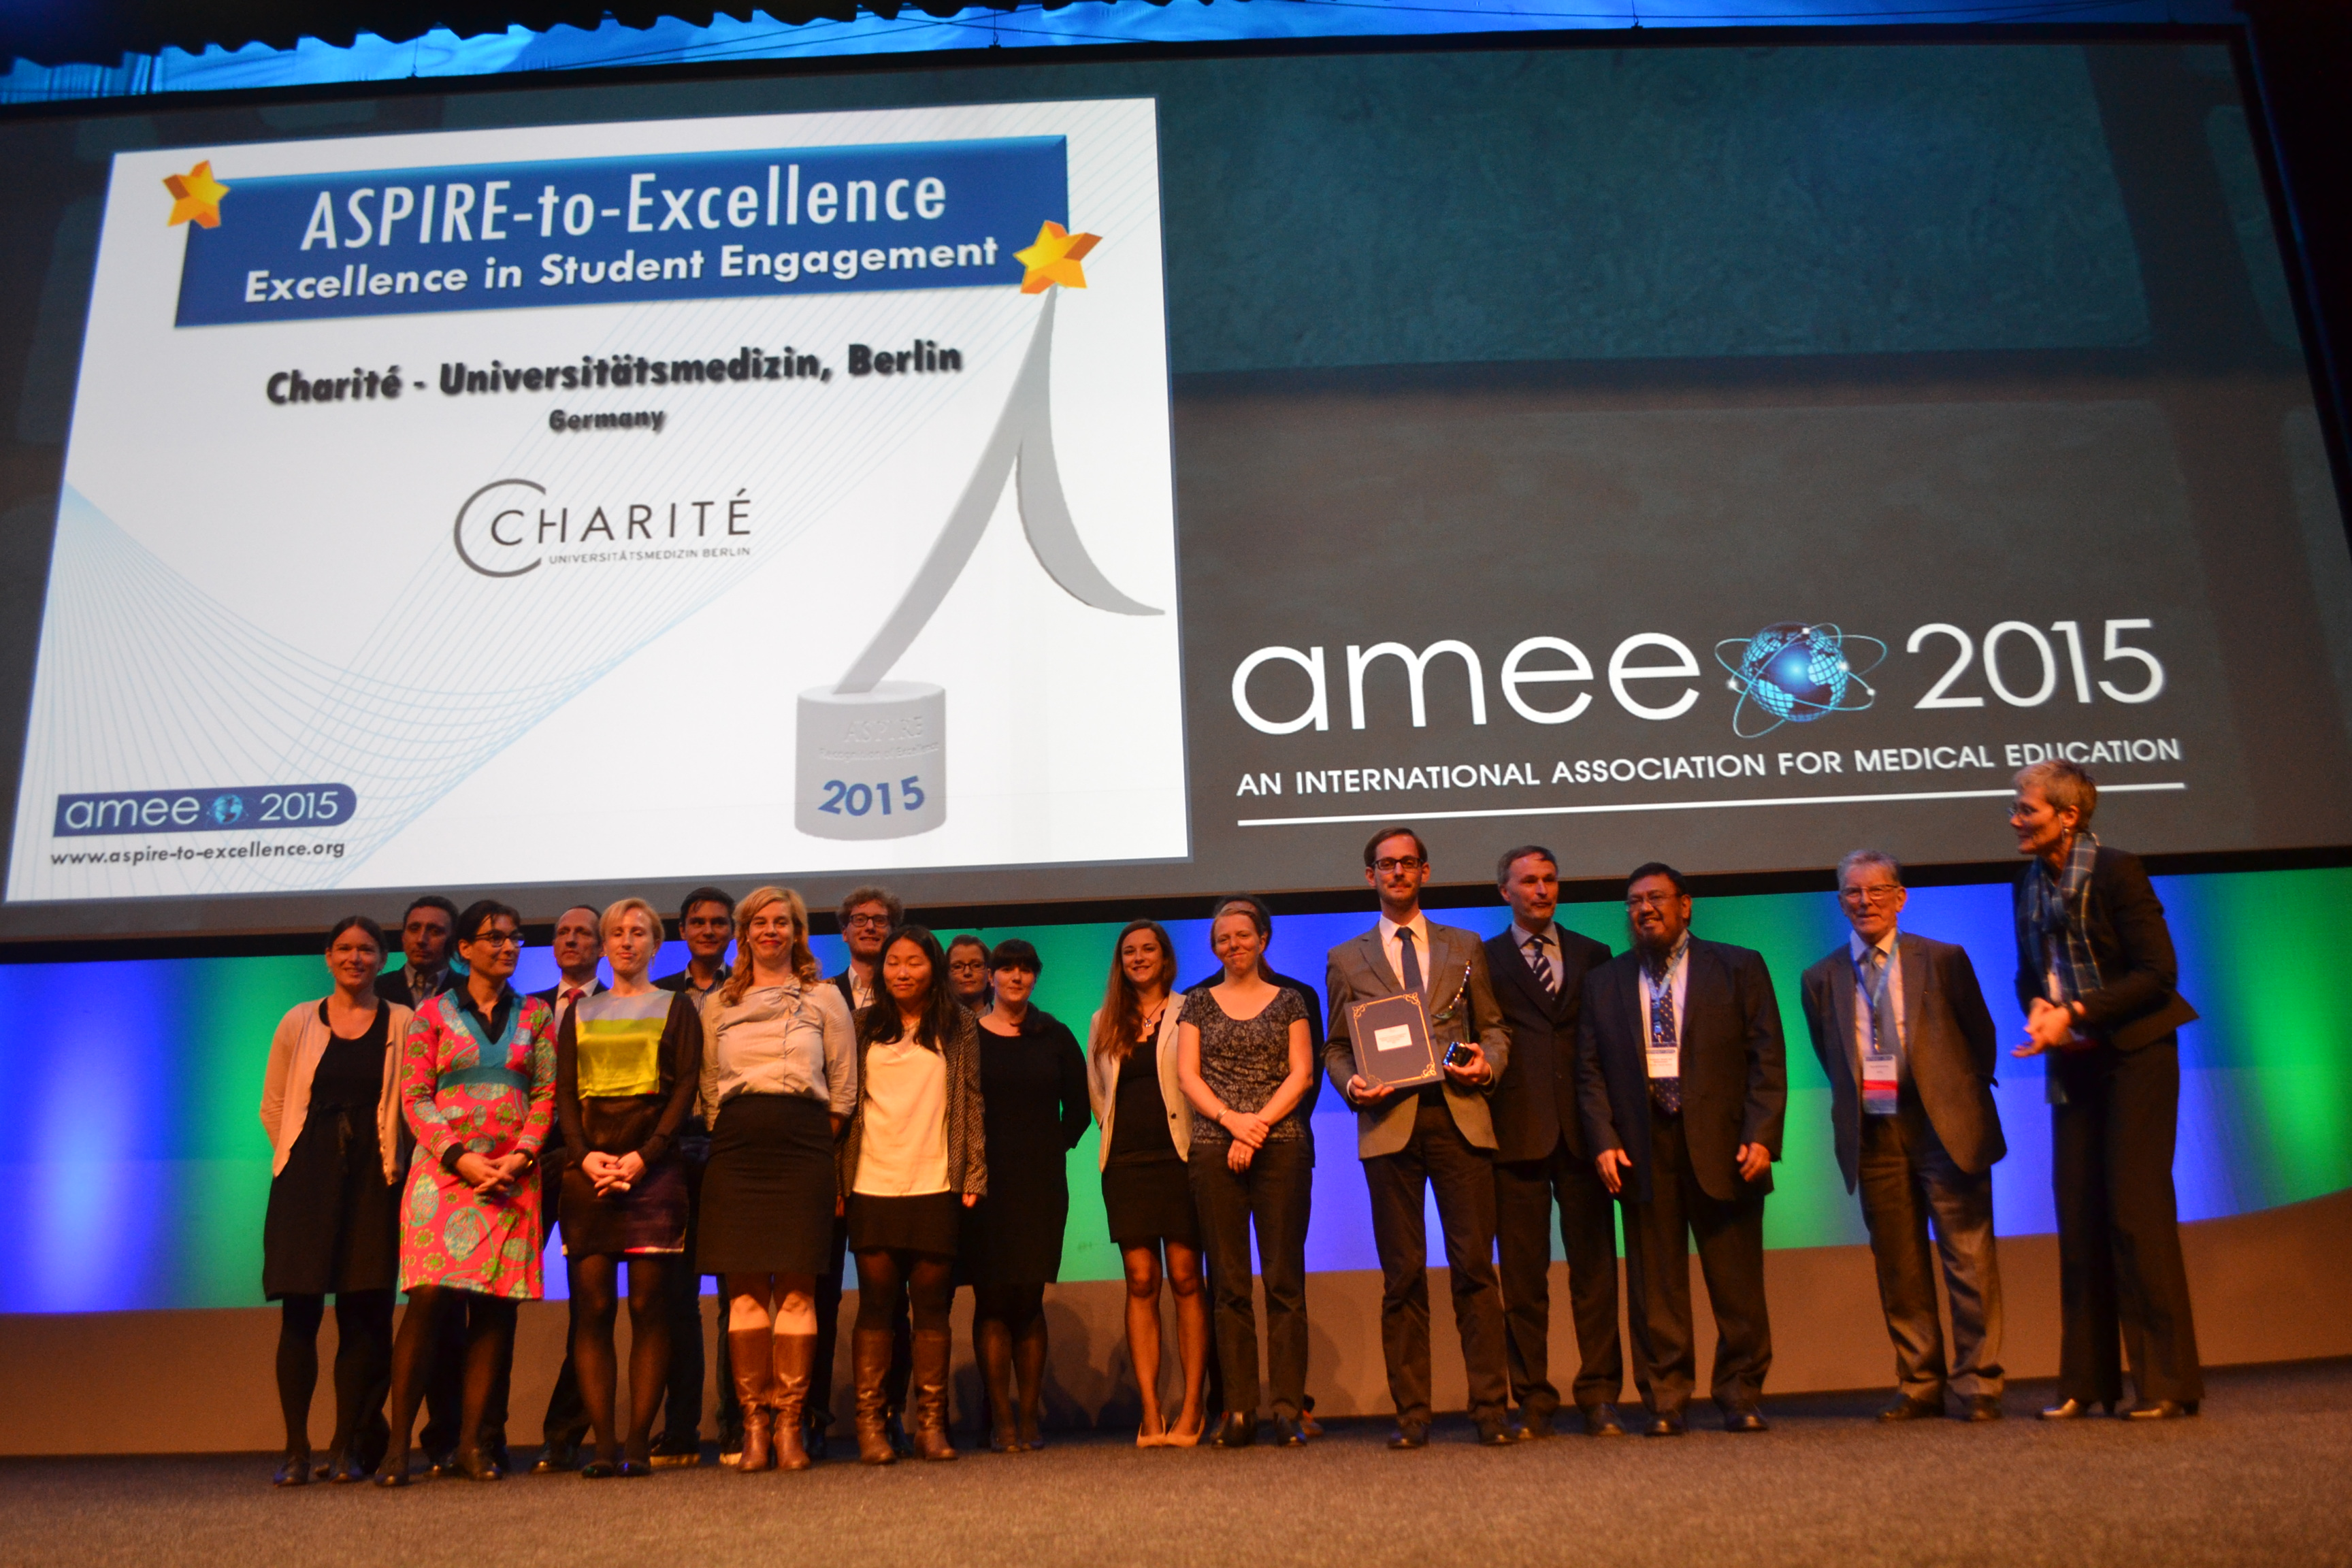 AMEE 2015 - ASPIRE-to-Excellence Student Awards - 011_Charite.JPG